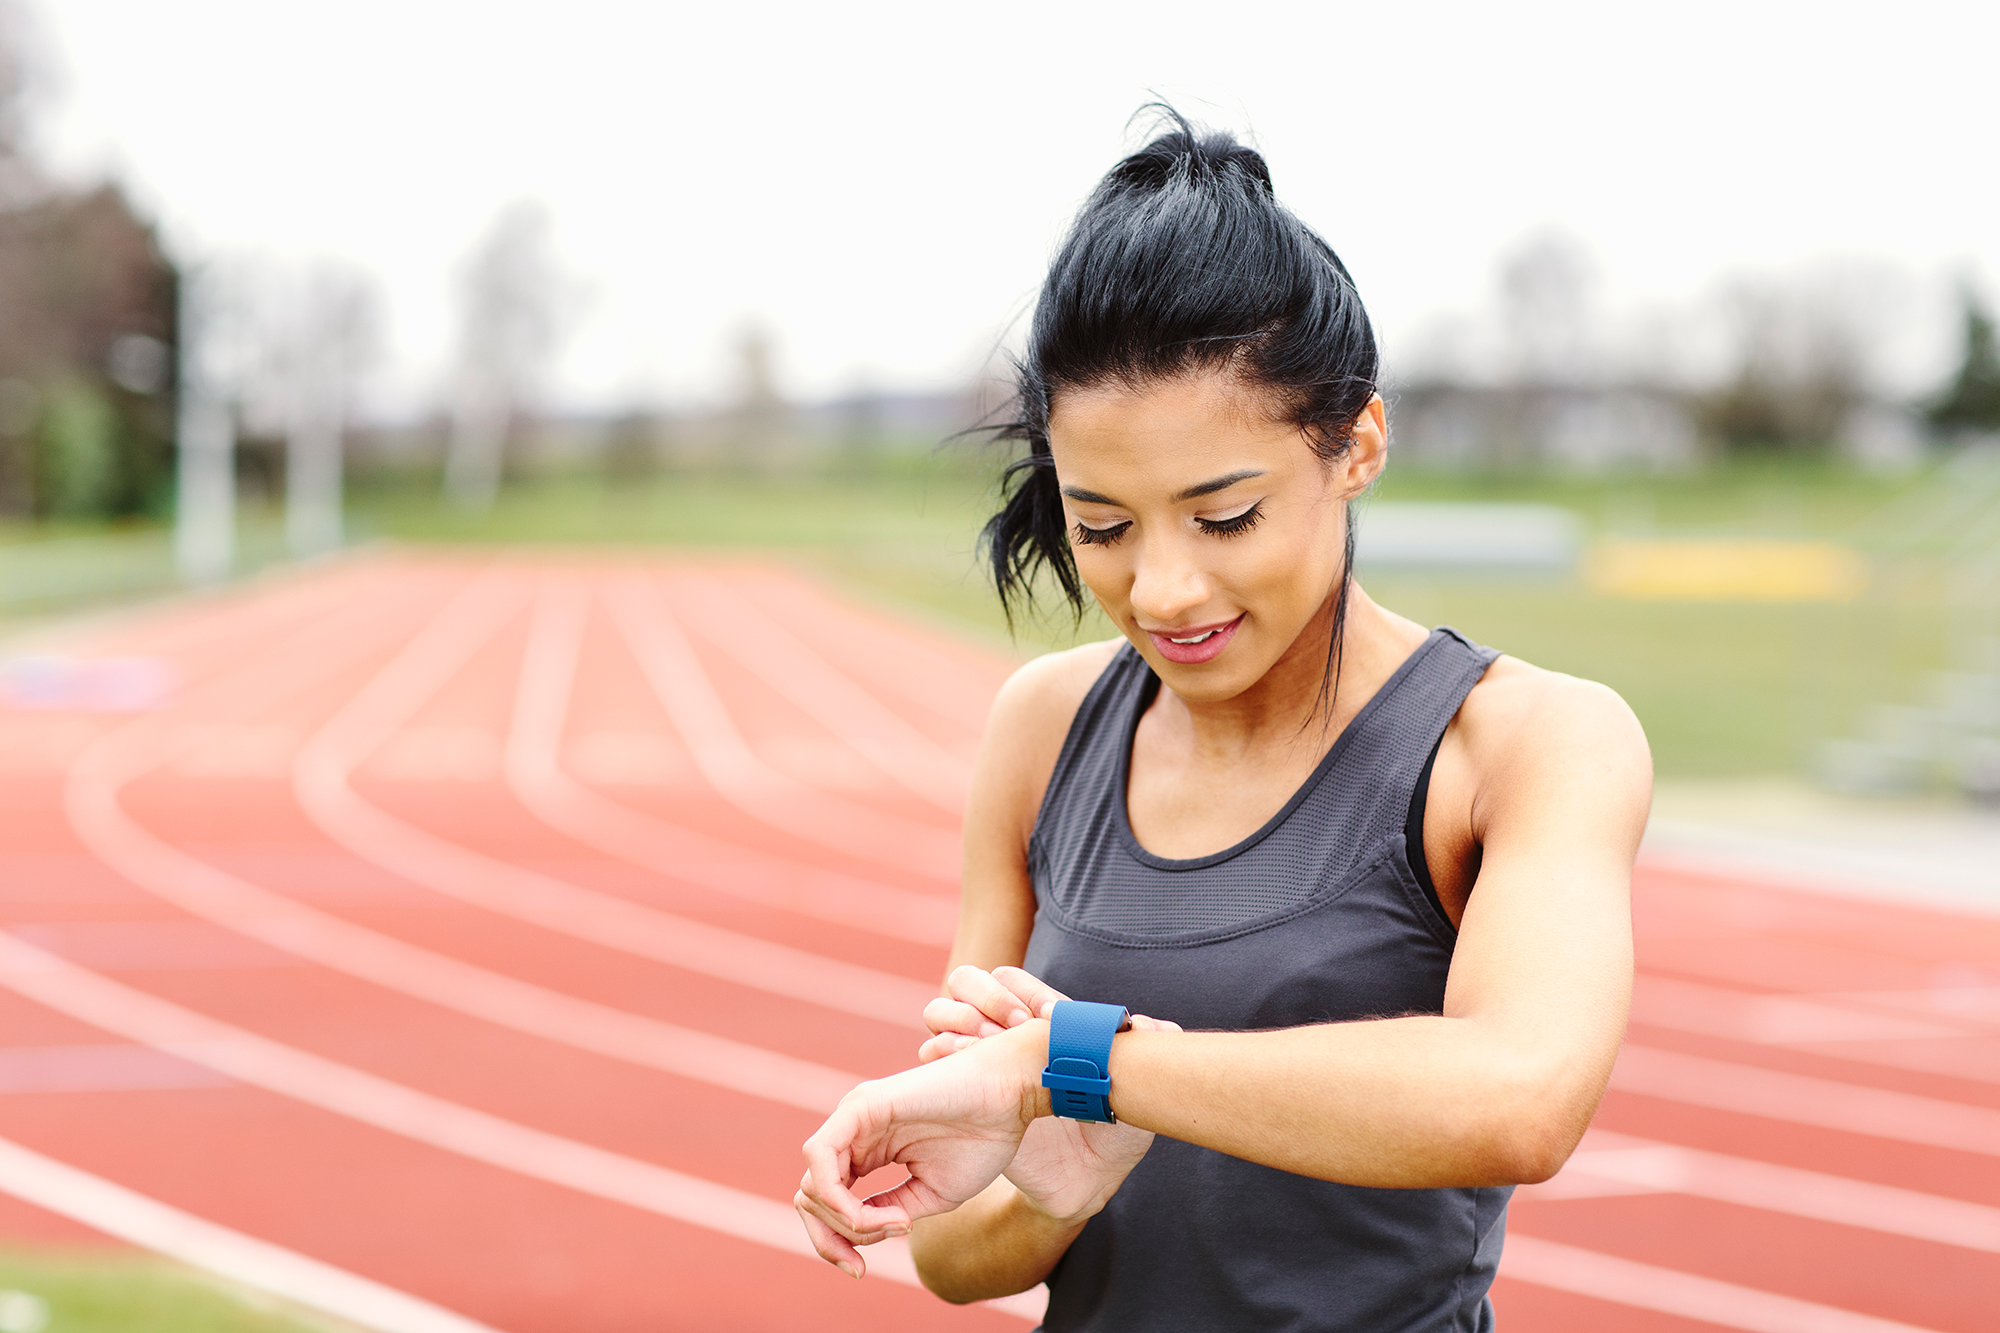 Fitness Wearables Are Finding a Place in Oncology Care